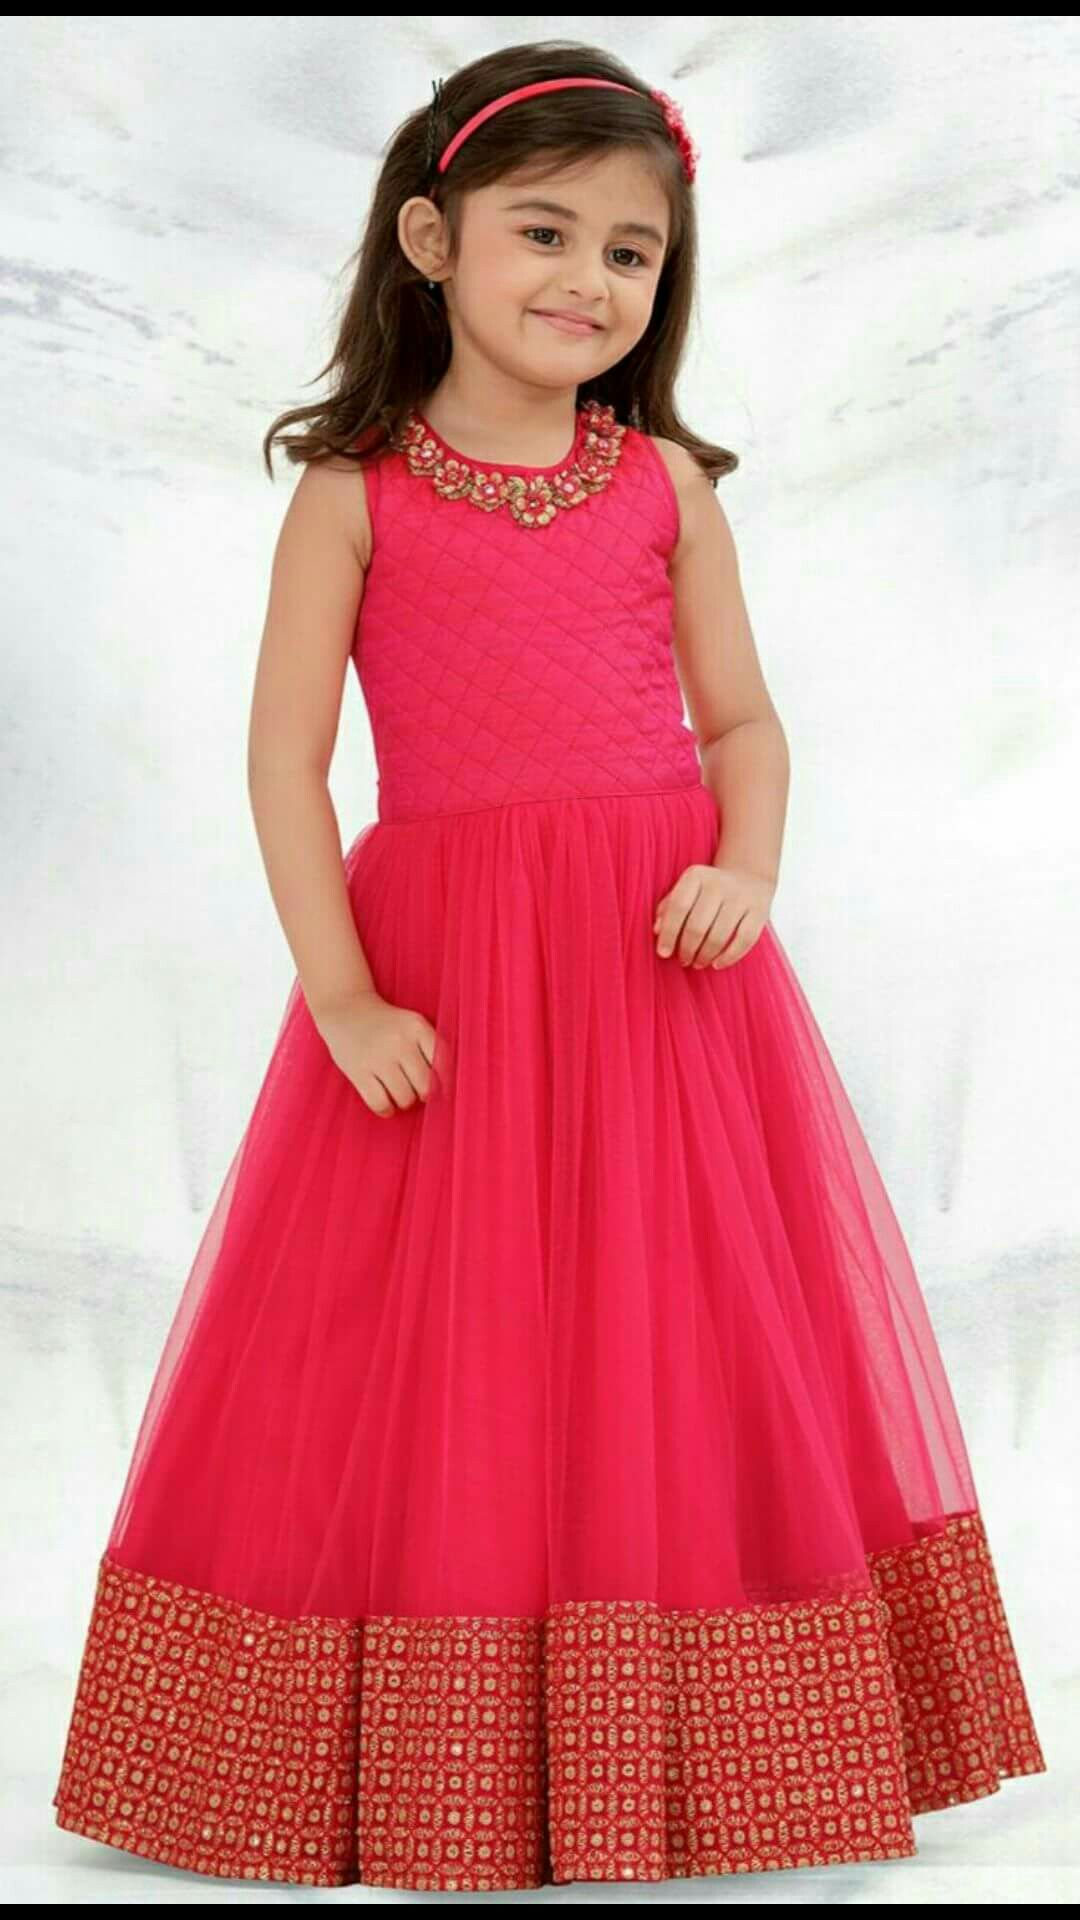 a66ba58783 Frocks | frocks in 2019 | Kids party wear dresses, Gowns for girls ...